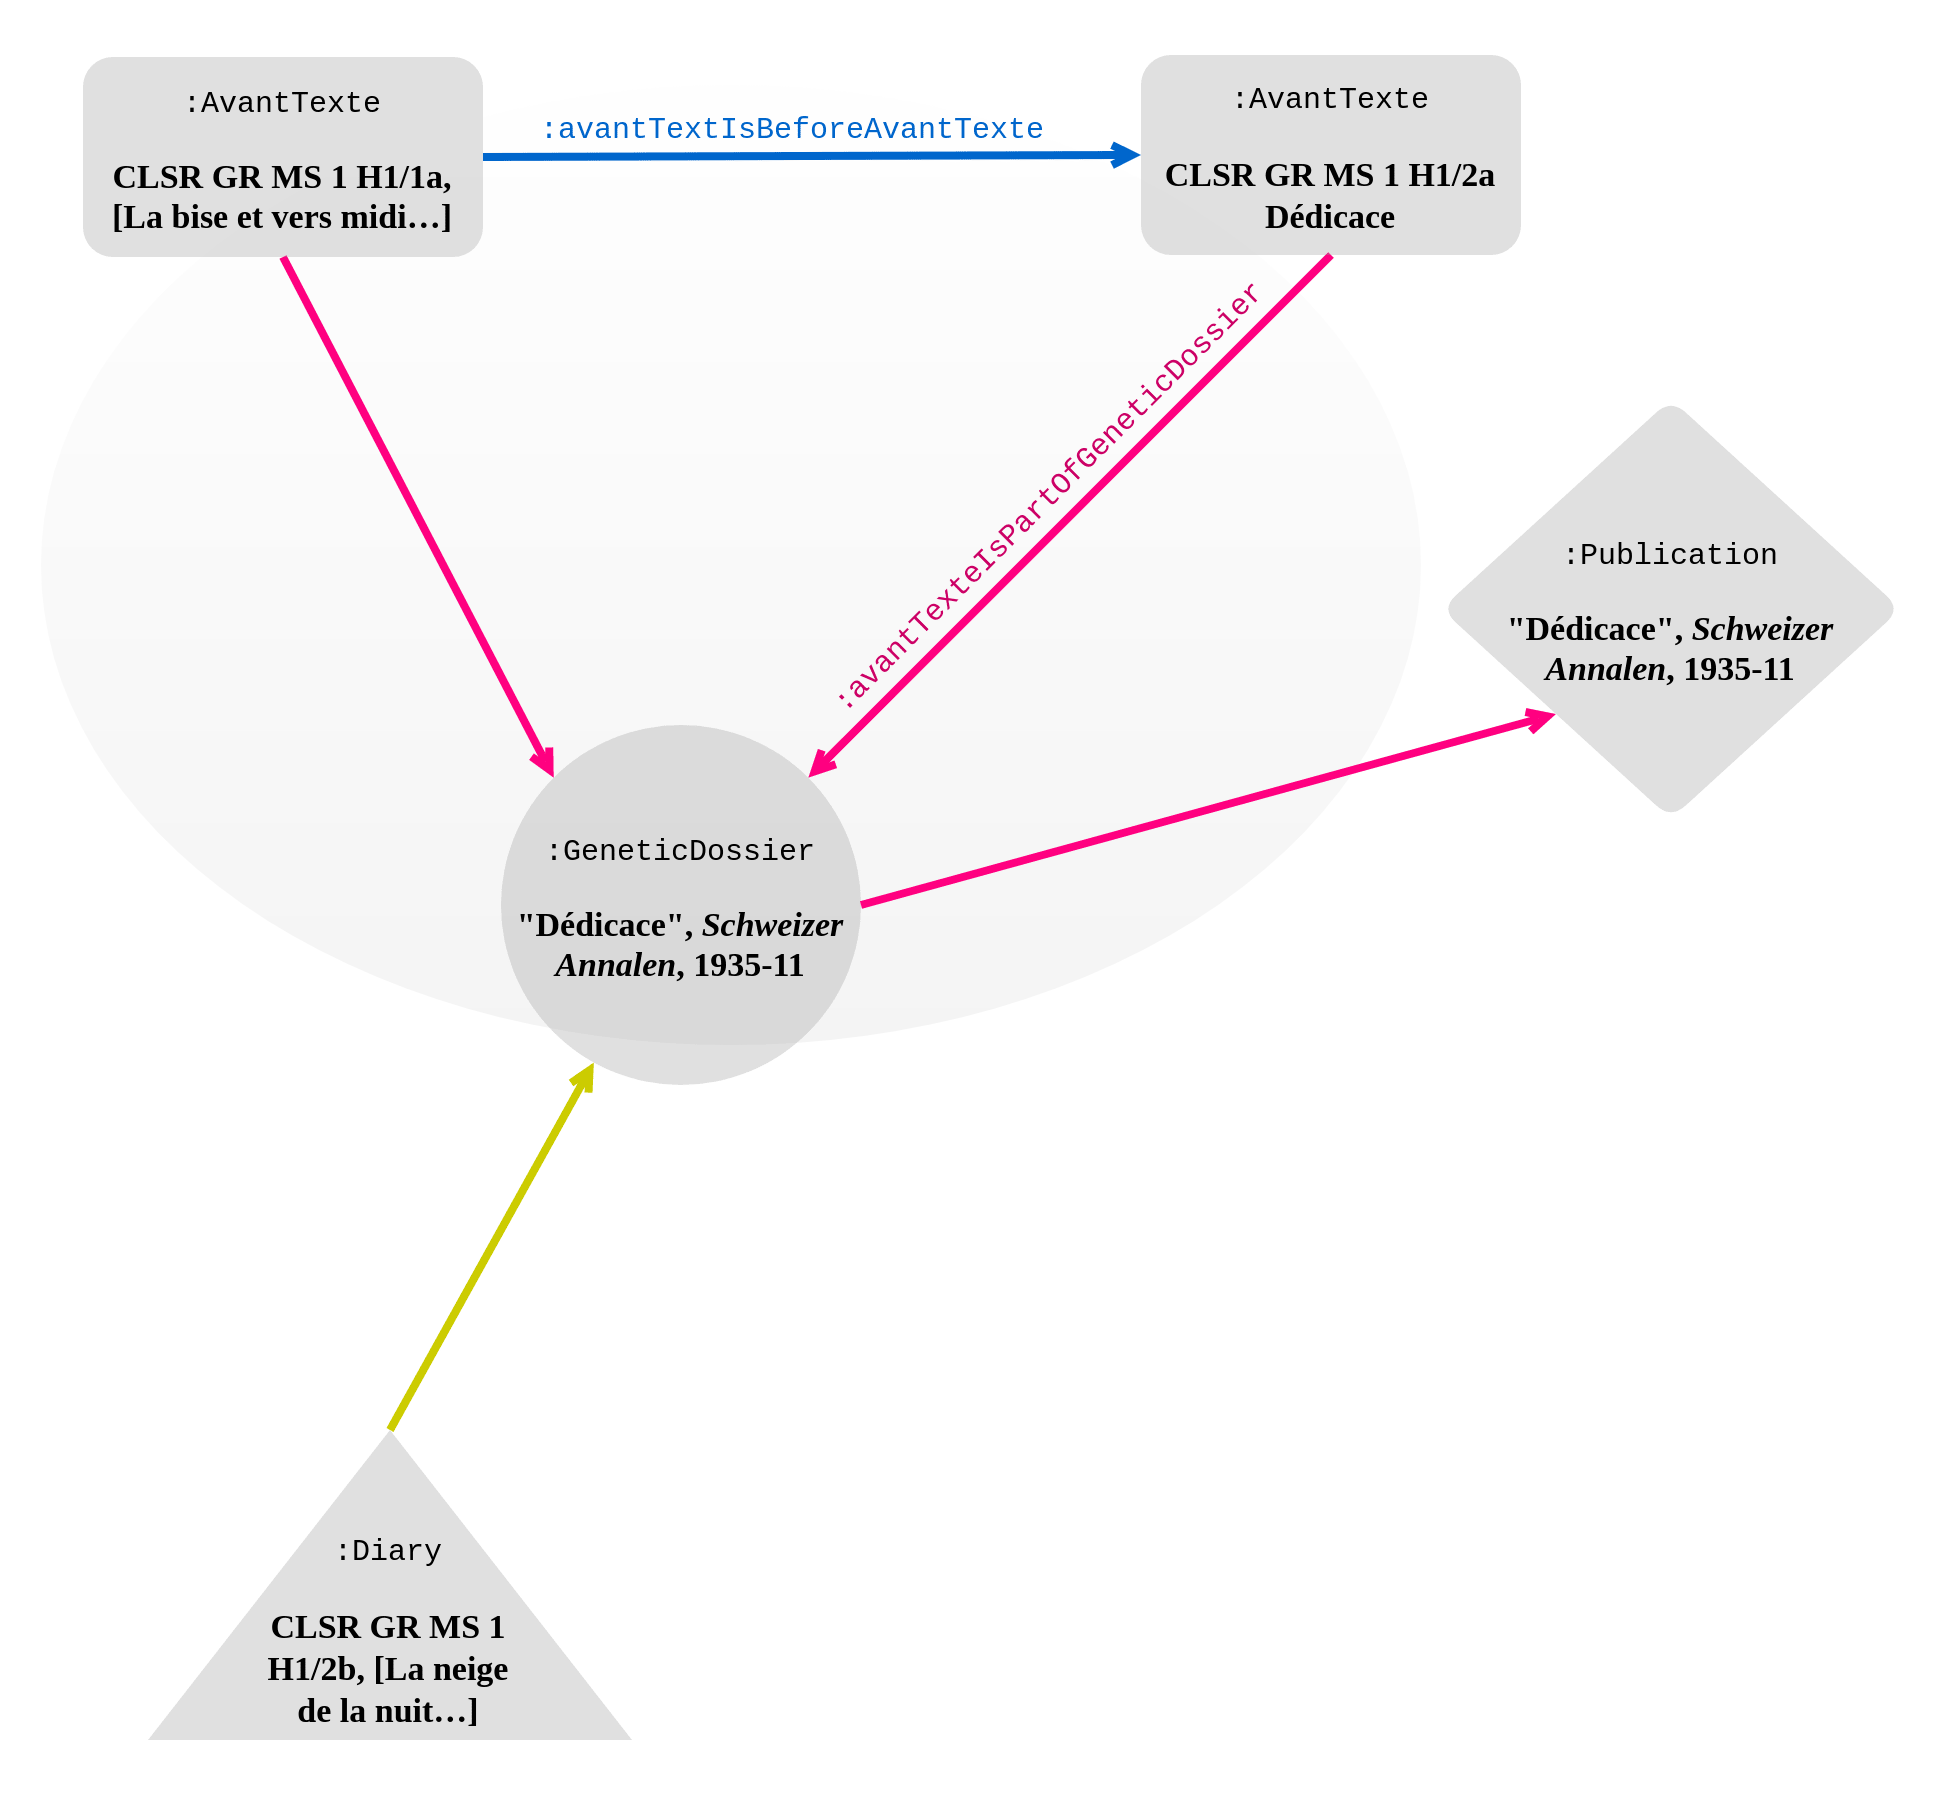 """Genetic network of """"Dédicace"""", Schweizer Annalen, November 1935. Links to the genetic dossier are in pink; the blue edges indicate the chronological succession of the documents in the genetic dossier; sub-properties of :isReusedIn are in yellow. Labels are sometimes omitted to avoid overcrowding the diagram."""